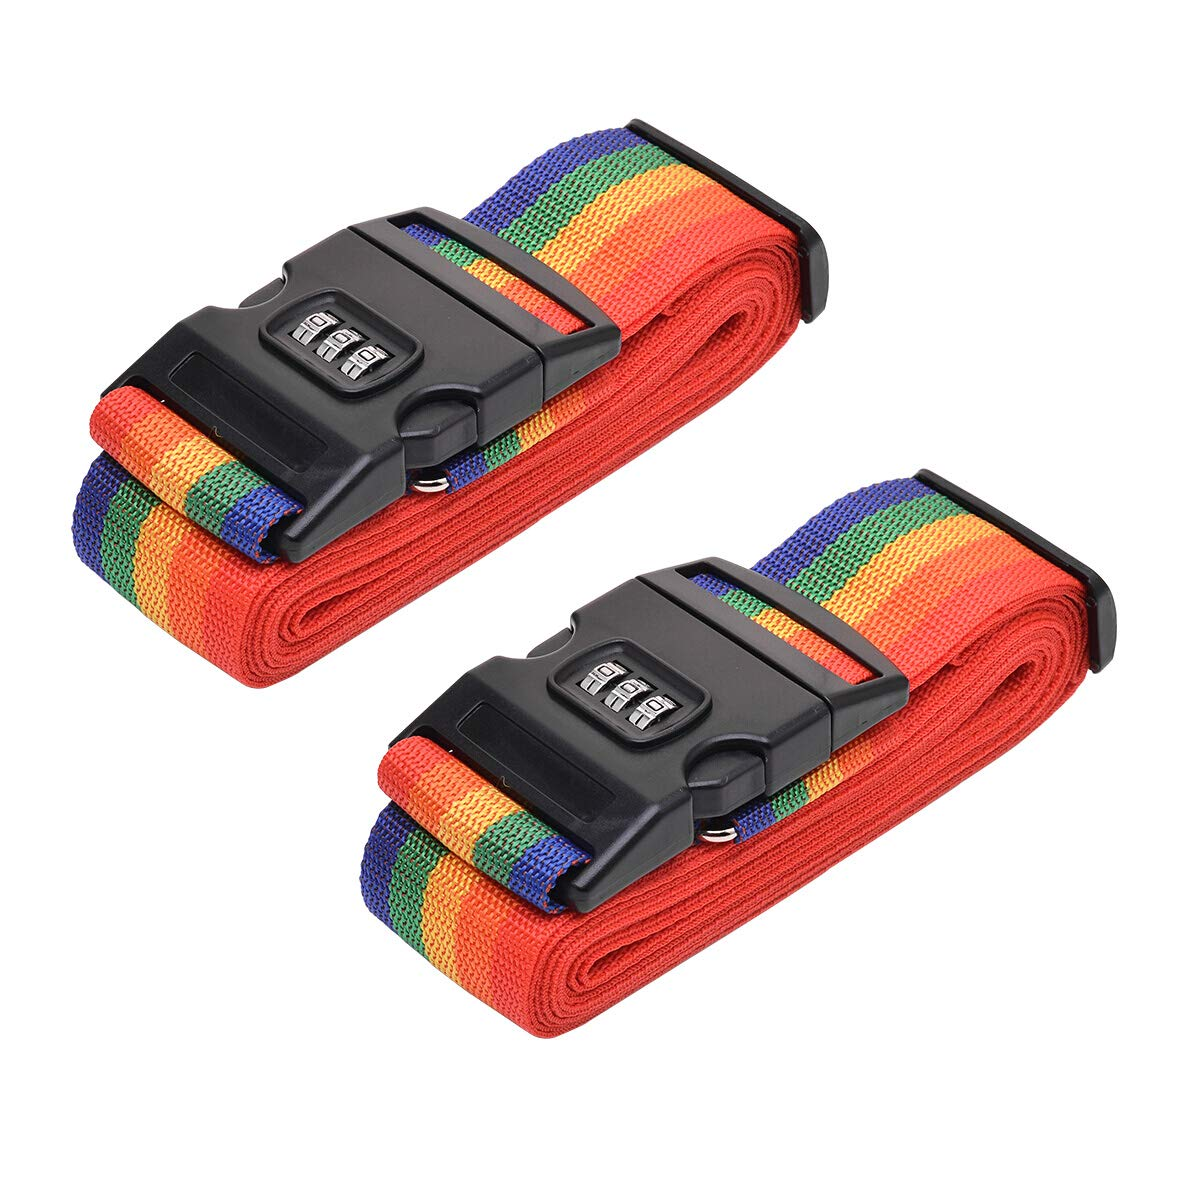 2 Pcs Luggage Straps Suitcase Belts Travel Accessories Adjustable Bag Straps with Combination Lock-Rainbow by WeTest